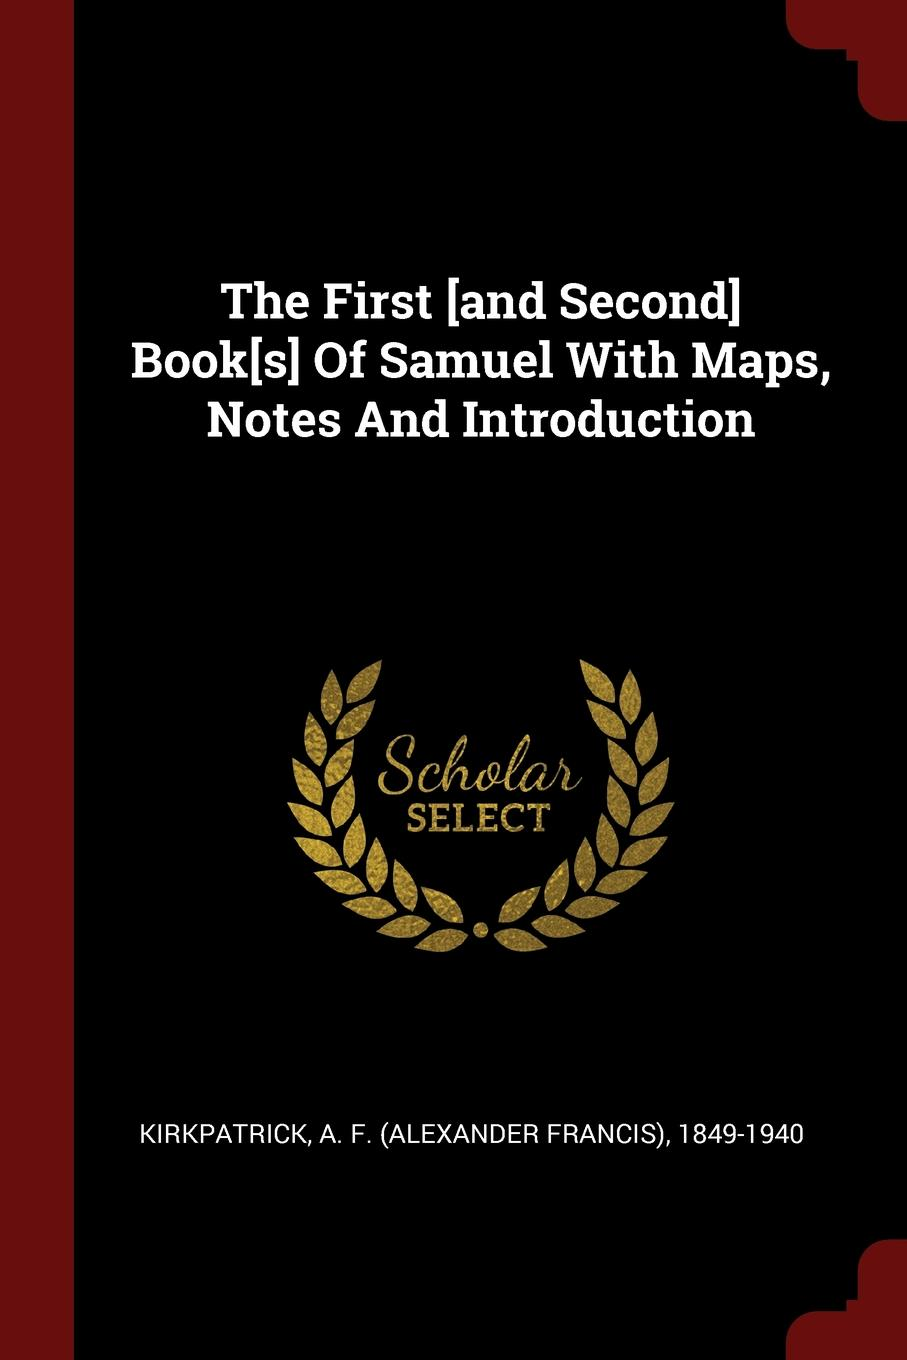 The First .and Second. Book.s. Of Samuel With Maps, Notes And Introduction